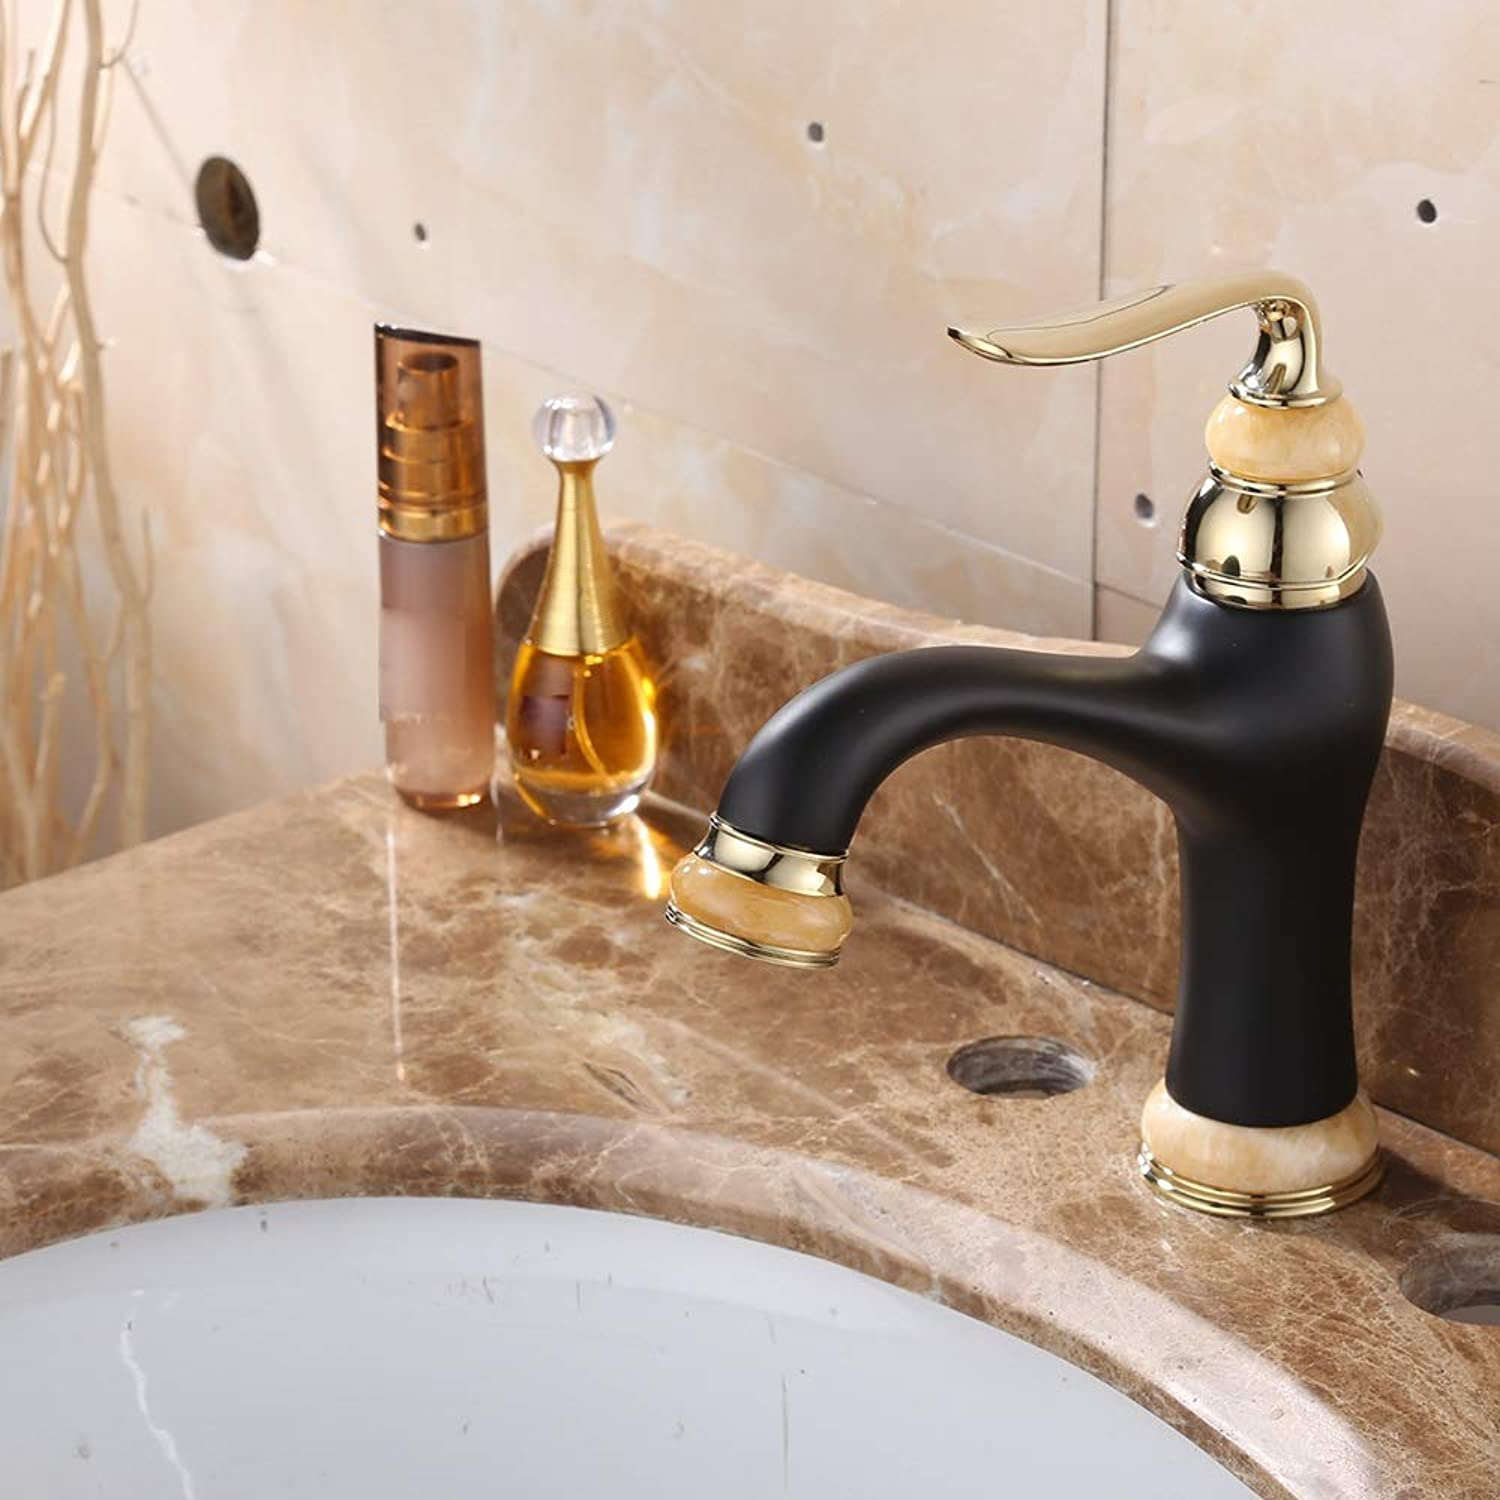 AmzGxp Bathroom Bathroom Copper Black gold Hot And Cold Basin Faucet One Generation Single Hole Fine Copper European Basin Faucet